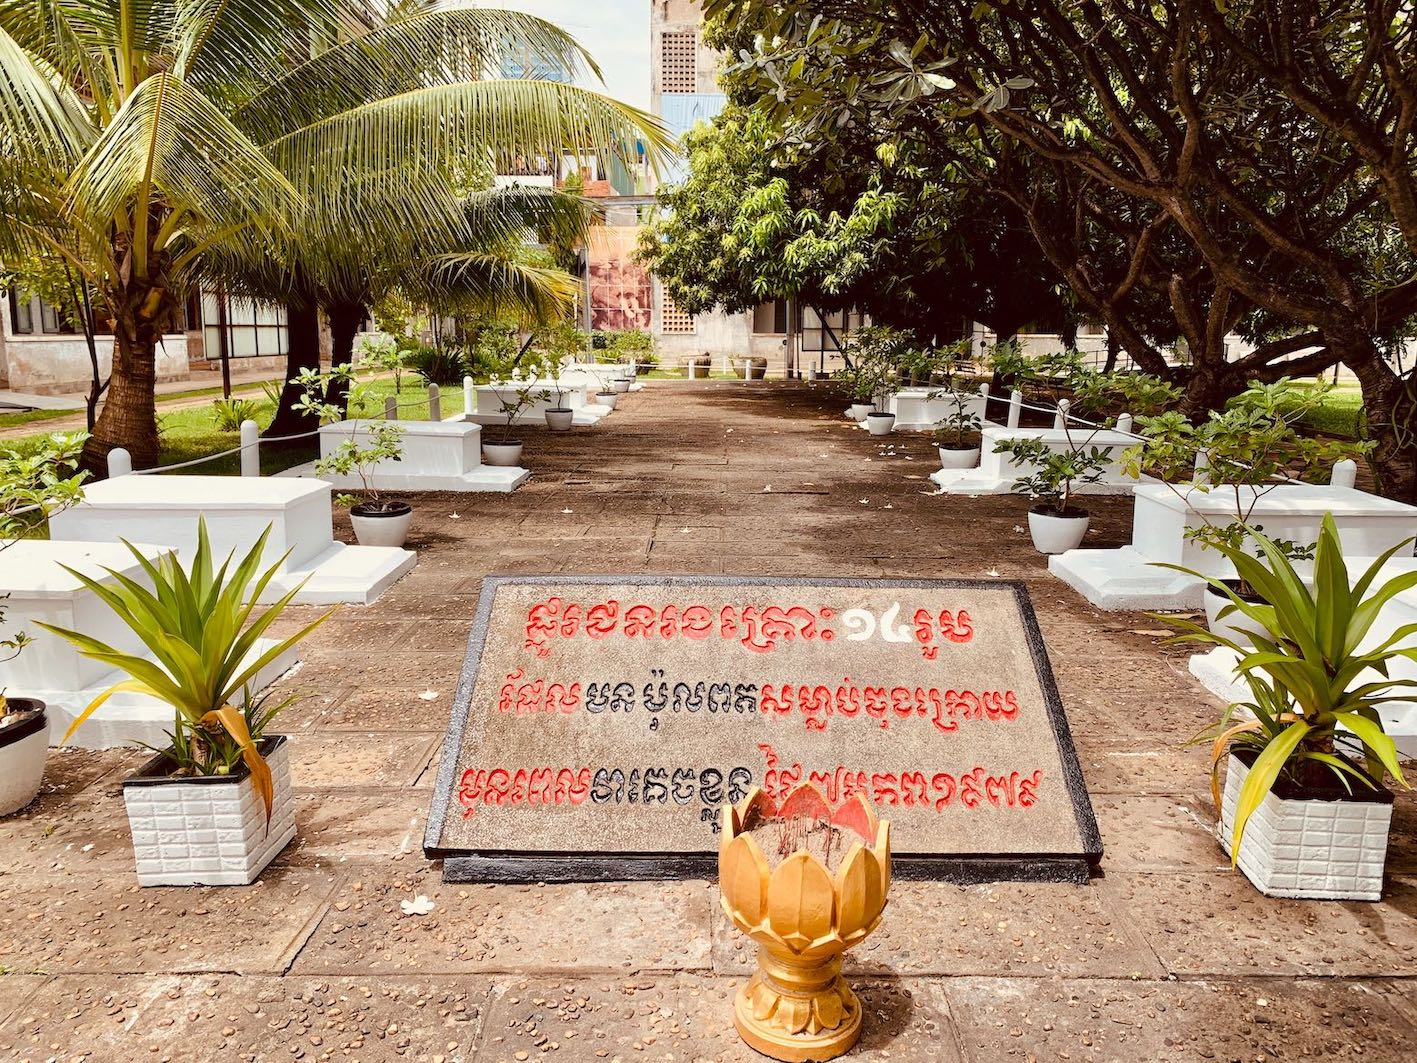 The beautiful garden at Tuol Sleng Genocide Museum